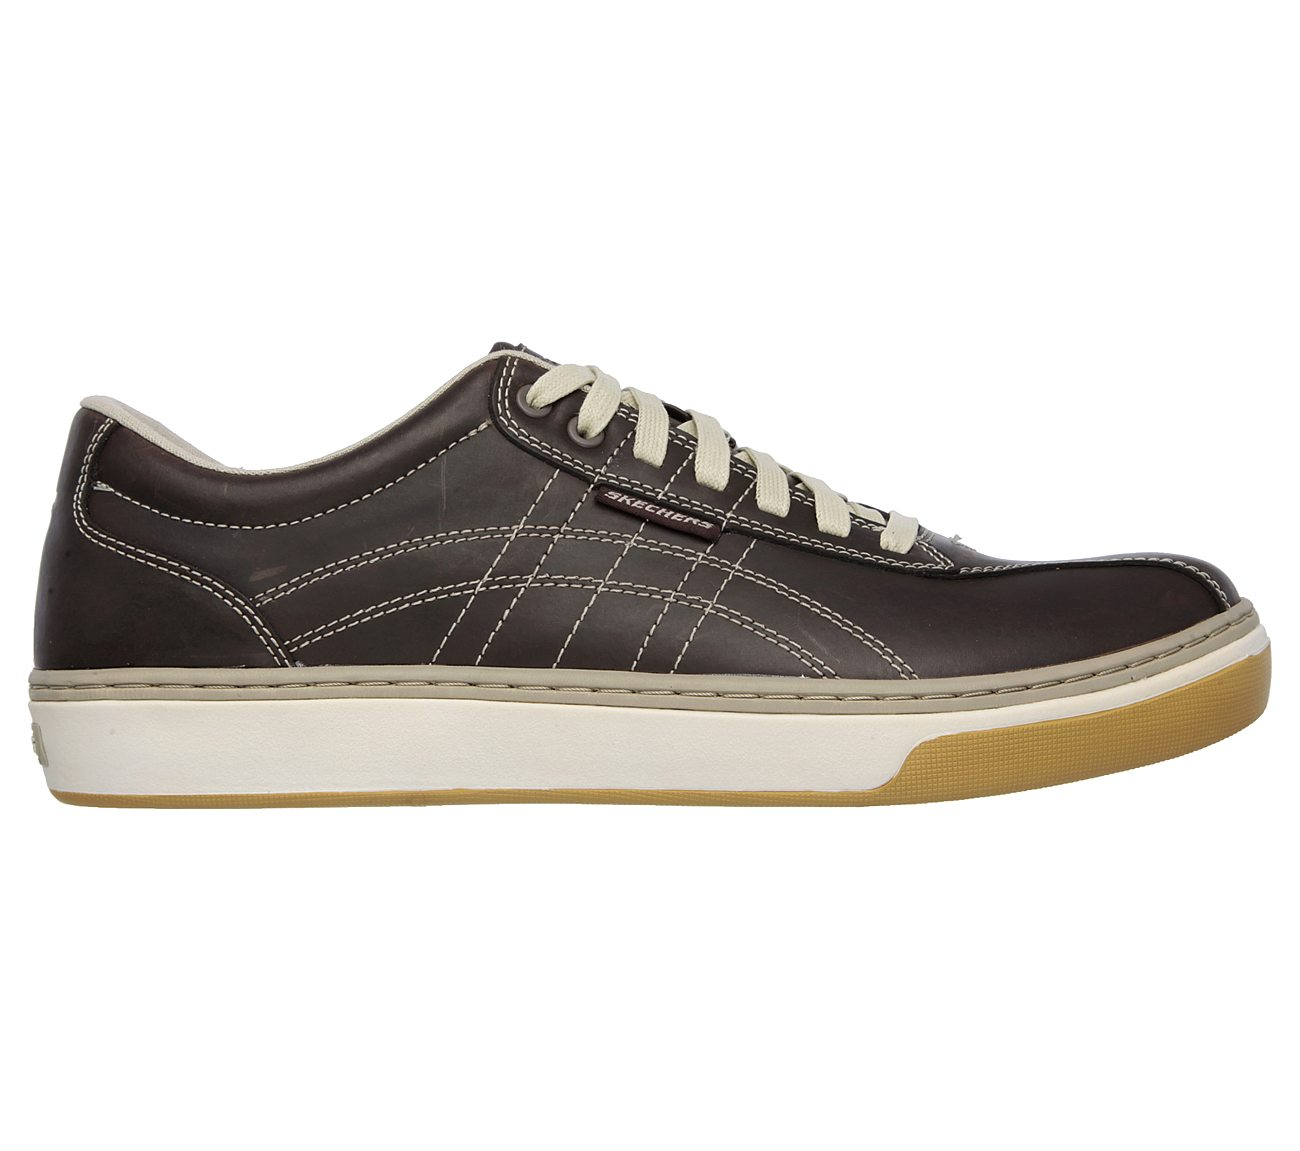 SKECHERS MENNES RELAXED Fit Leather Poles Eleno Sneaker, Dark R0H7G